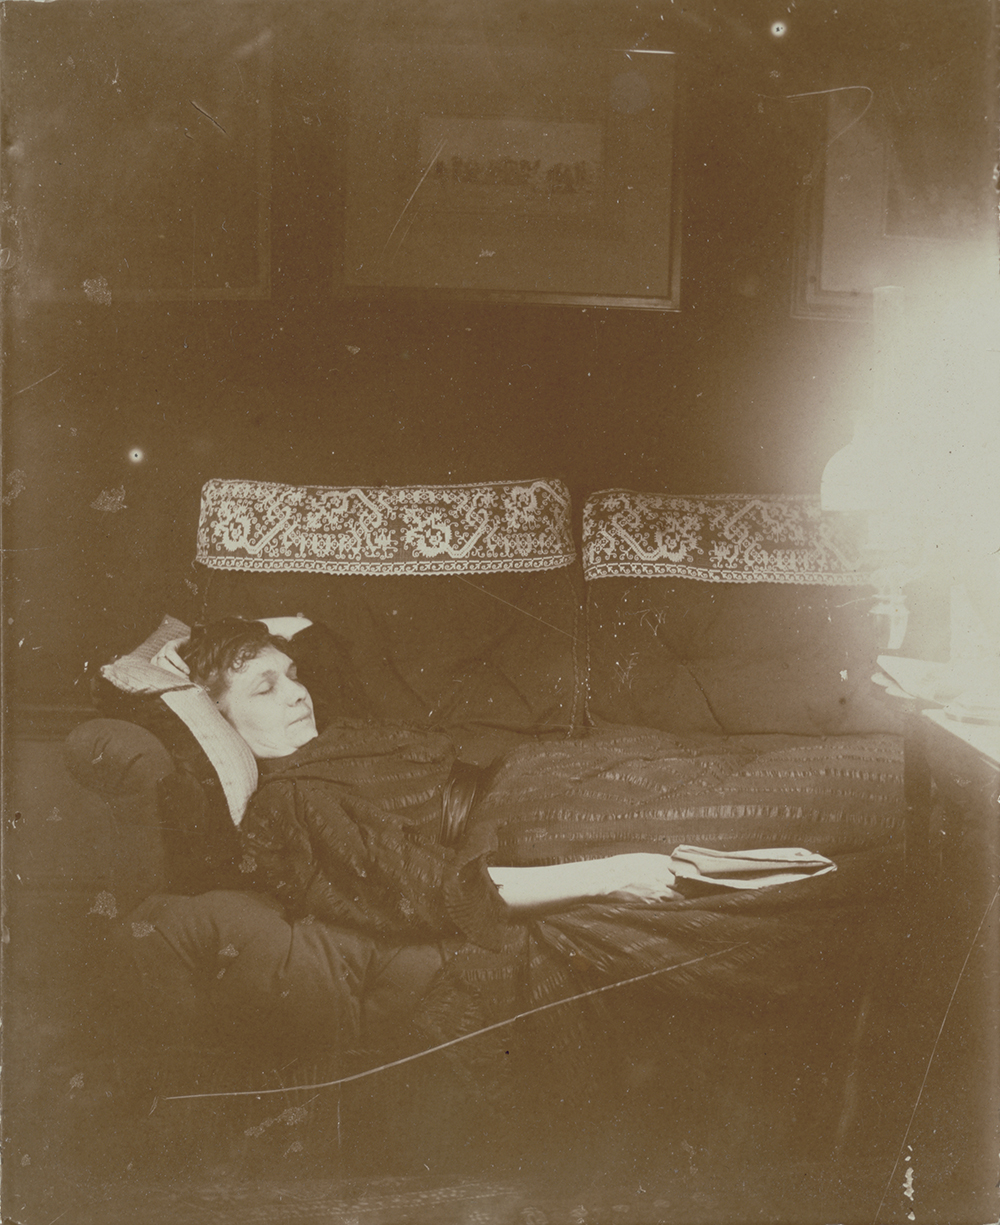 Louise Halévy reclining, 1895. Photograph by Edgar Degas. The J. Paul Getty Museum.